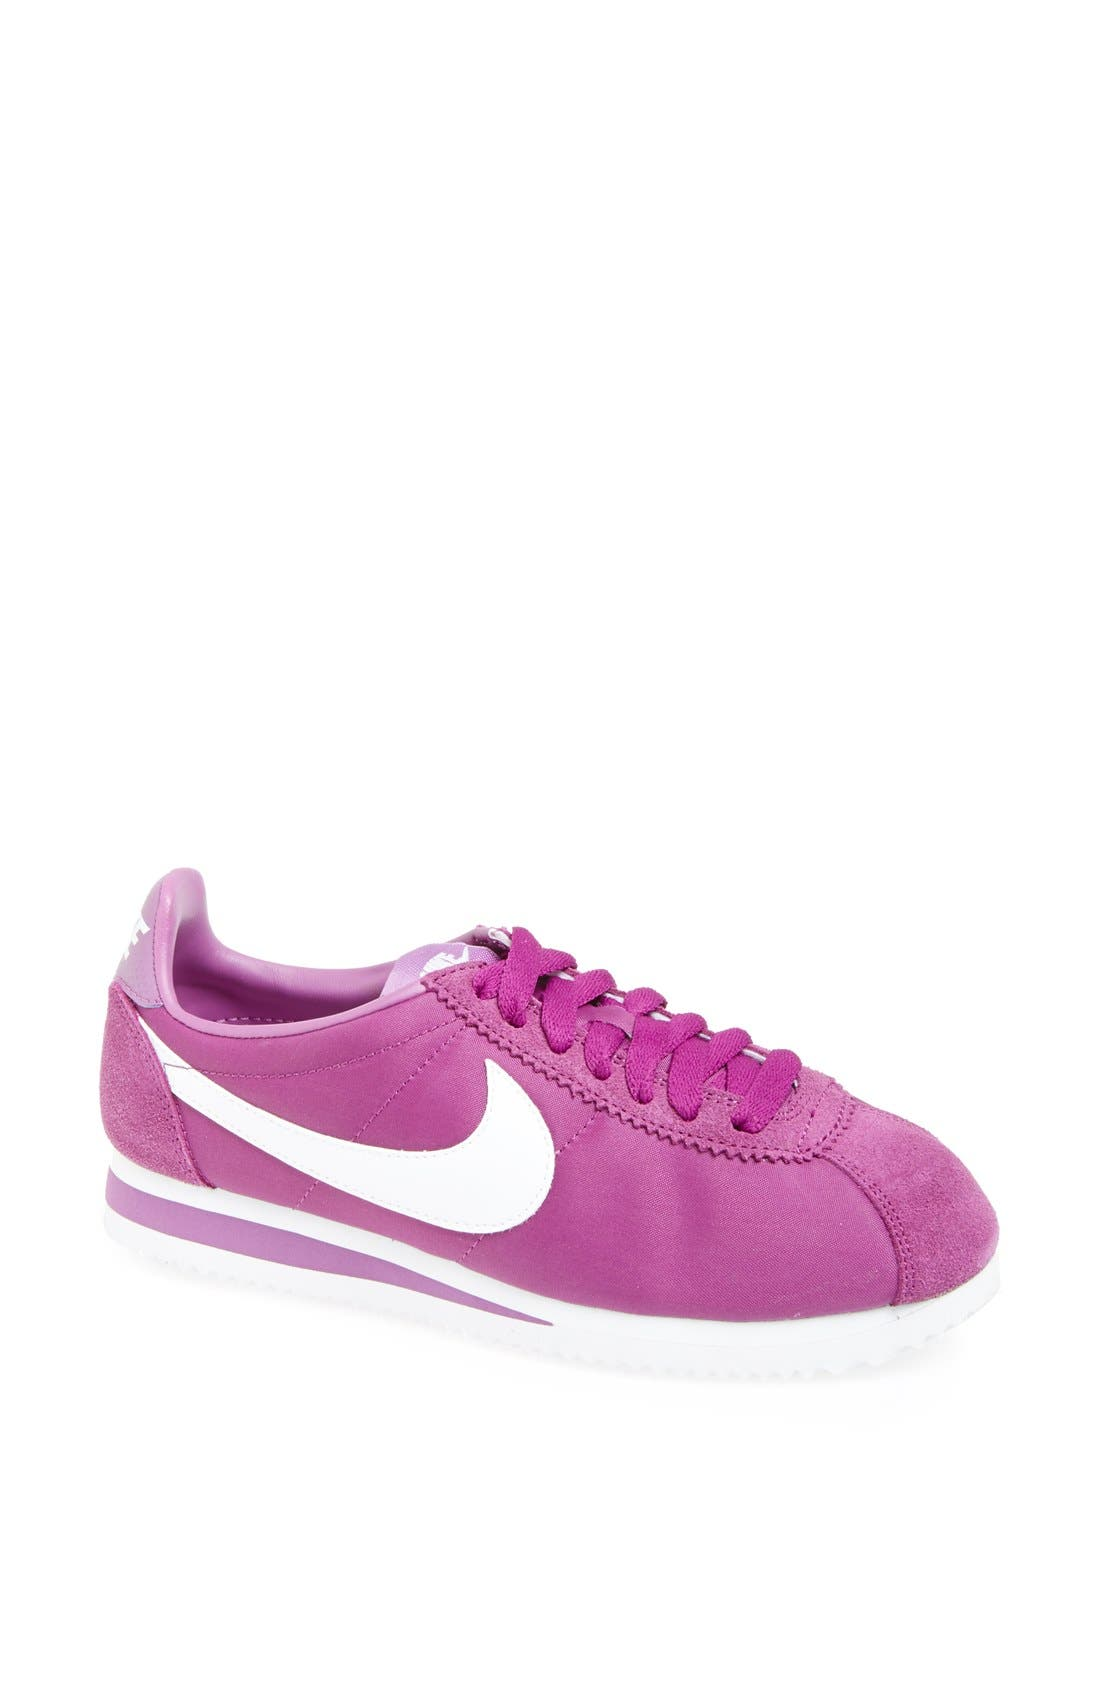 Alternate Image 1 Selected - Nike 'Classic Cortez' Sneaker (Women)